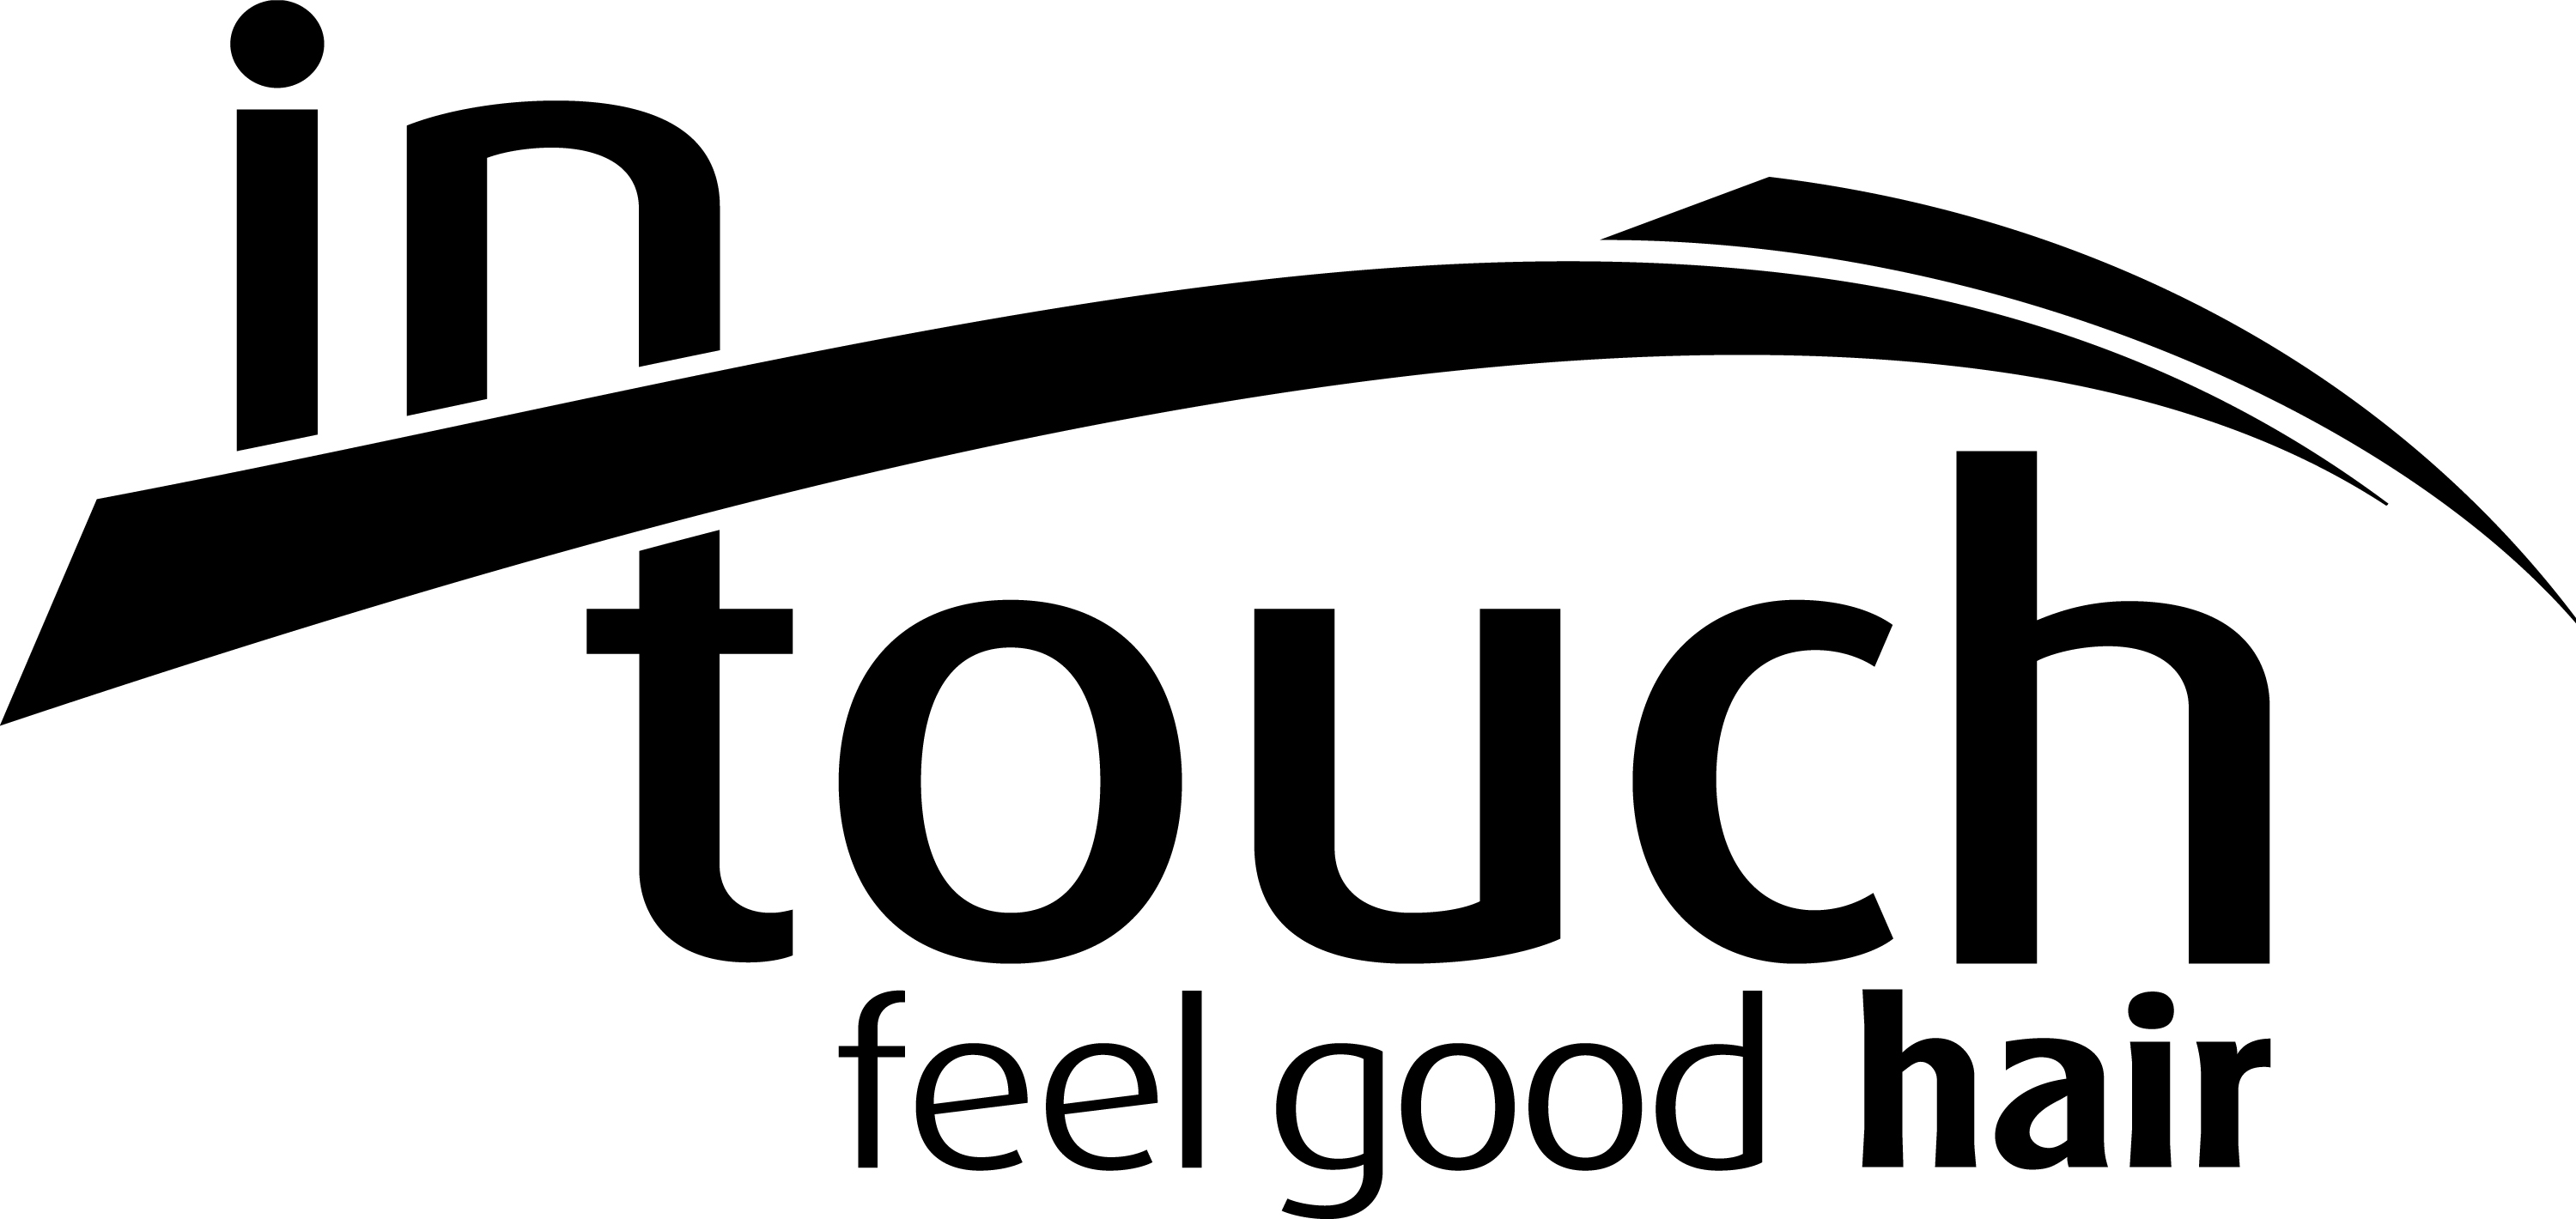 inTouch feel good hair